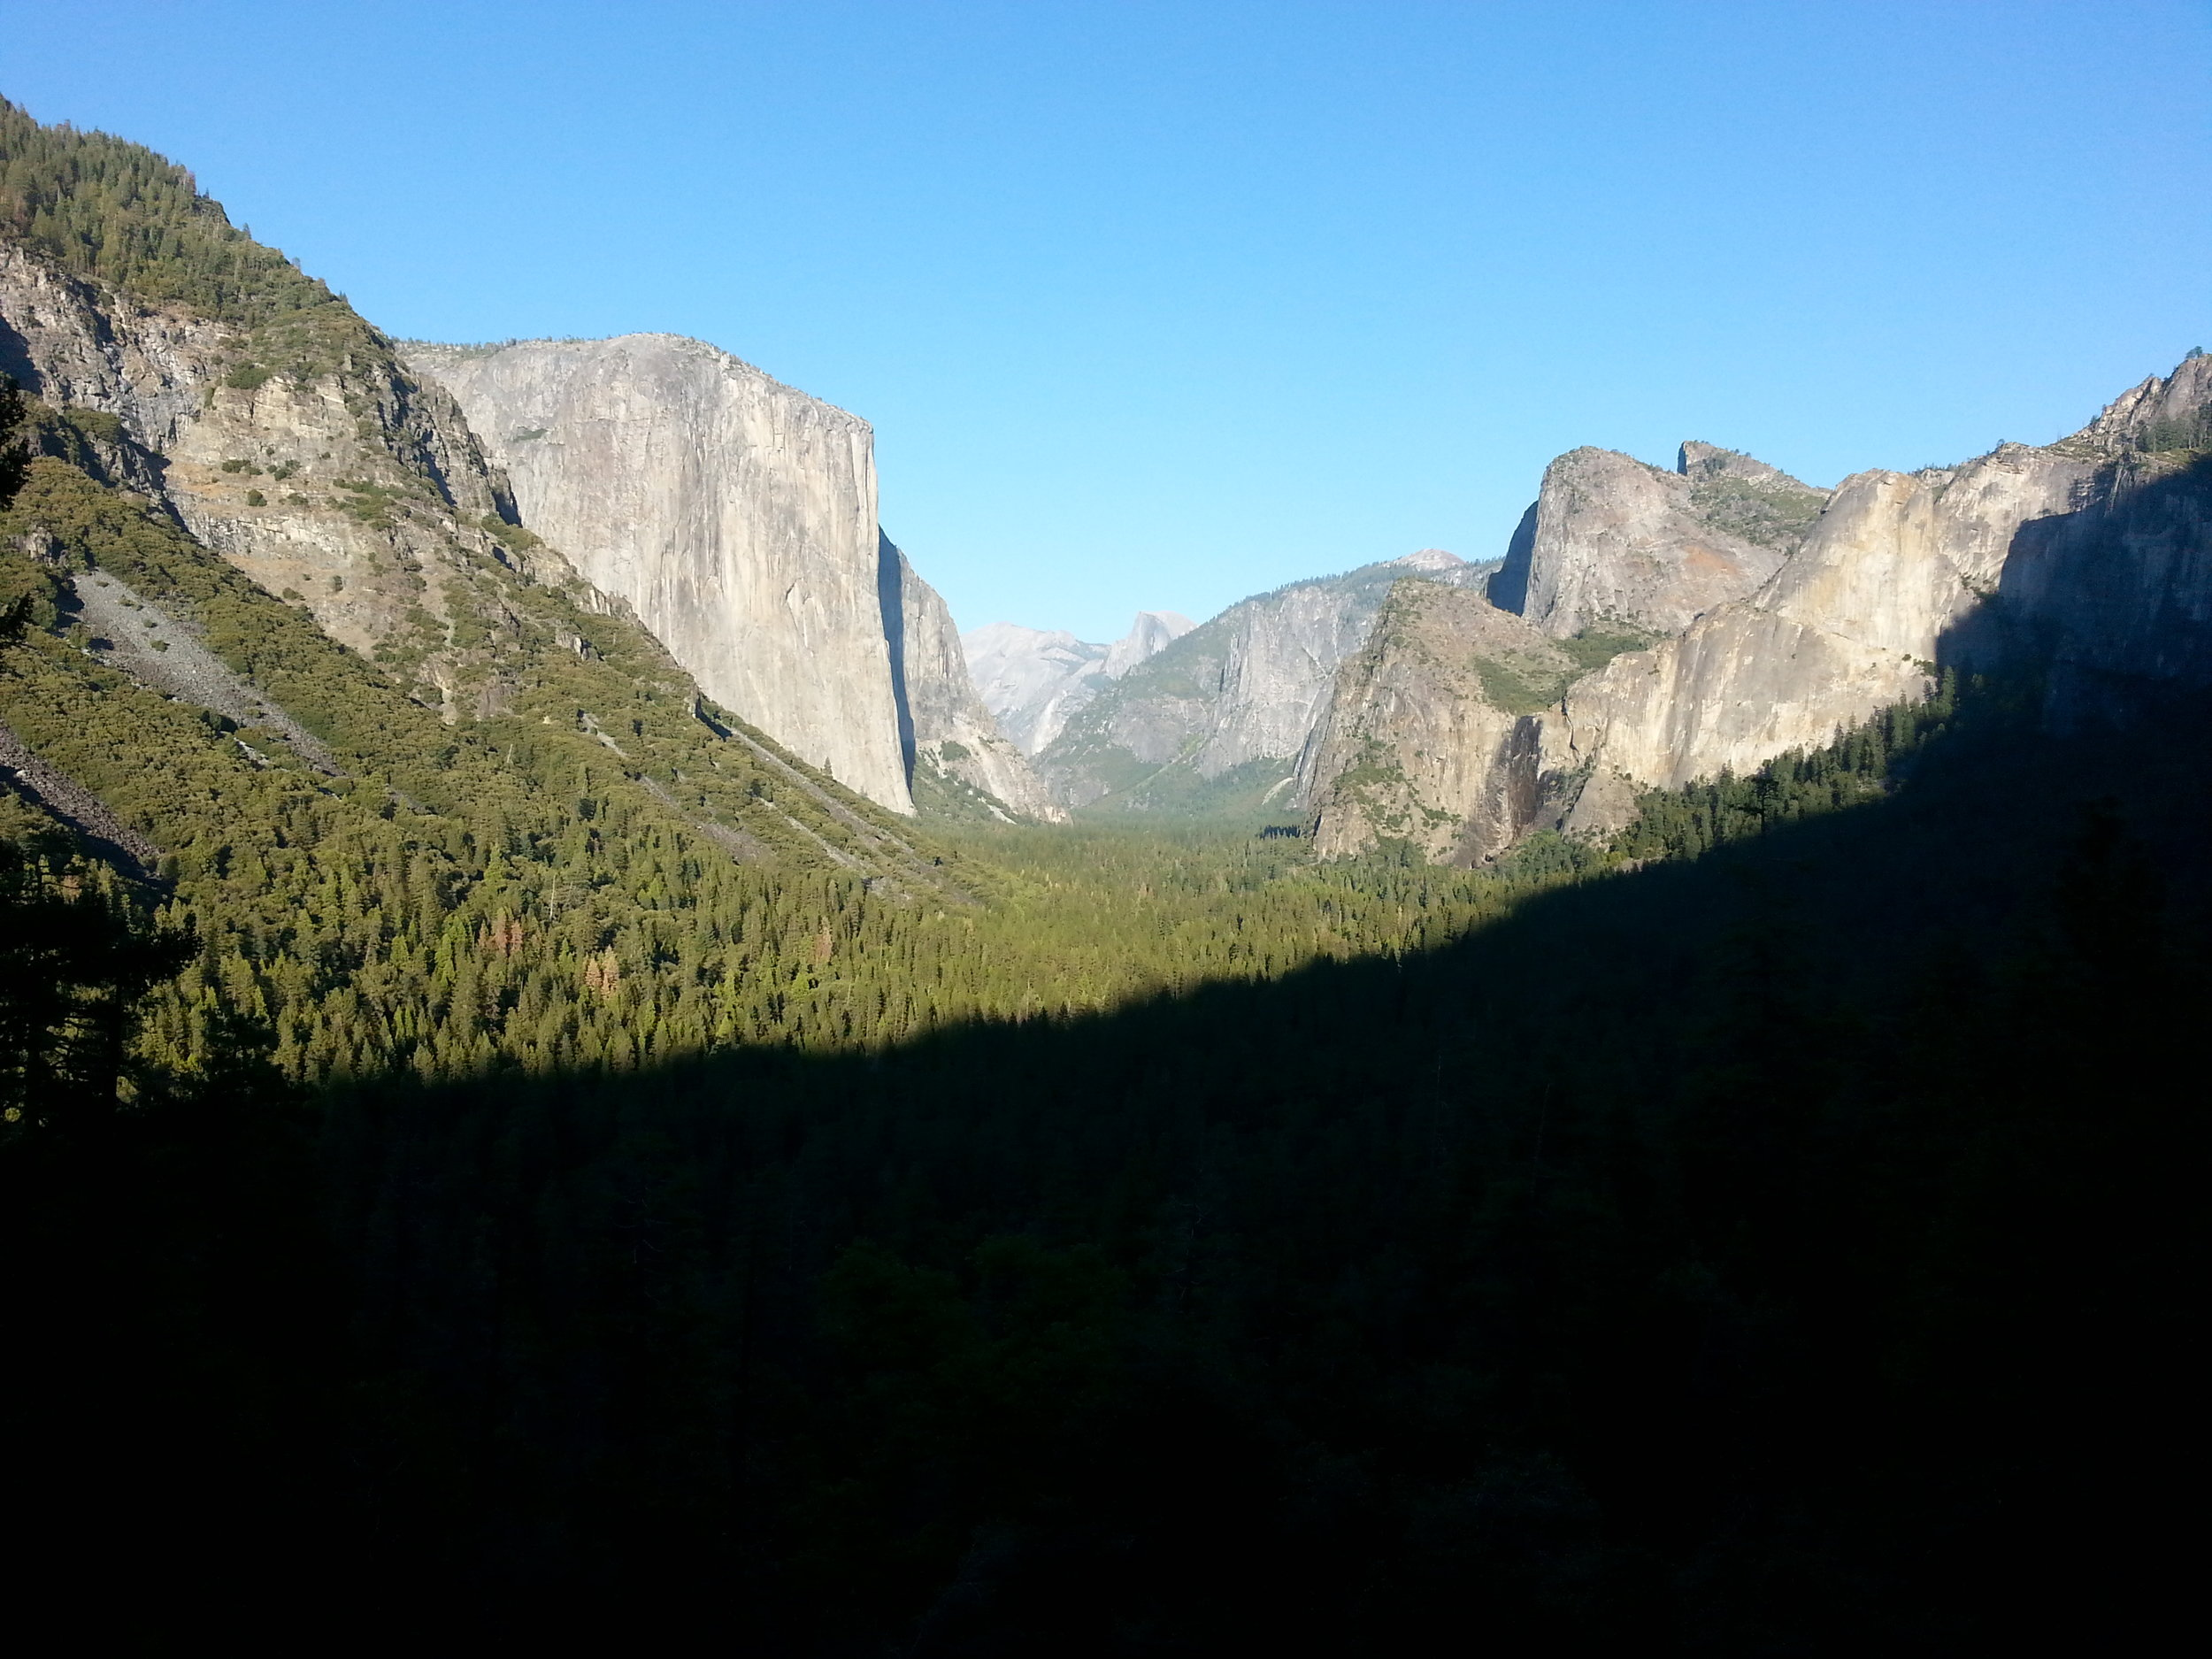 And the grand finale...Yosemite National Park!